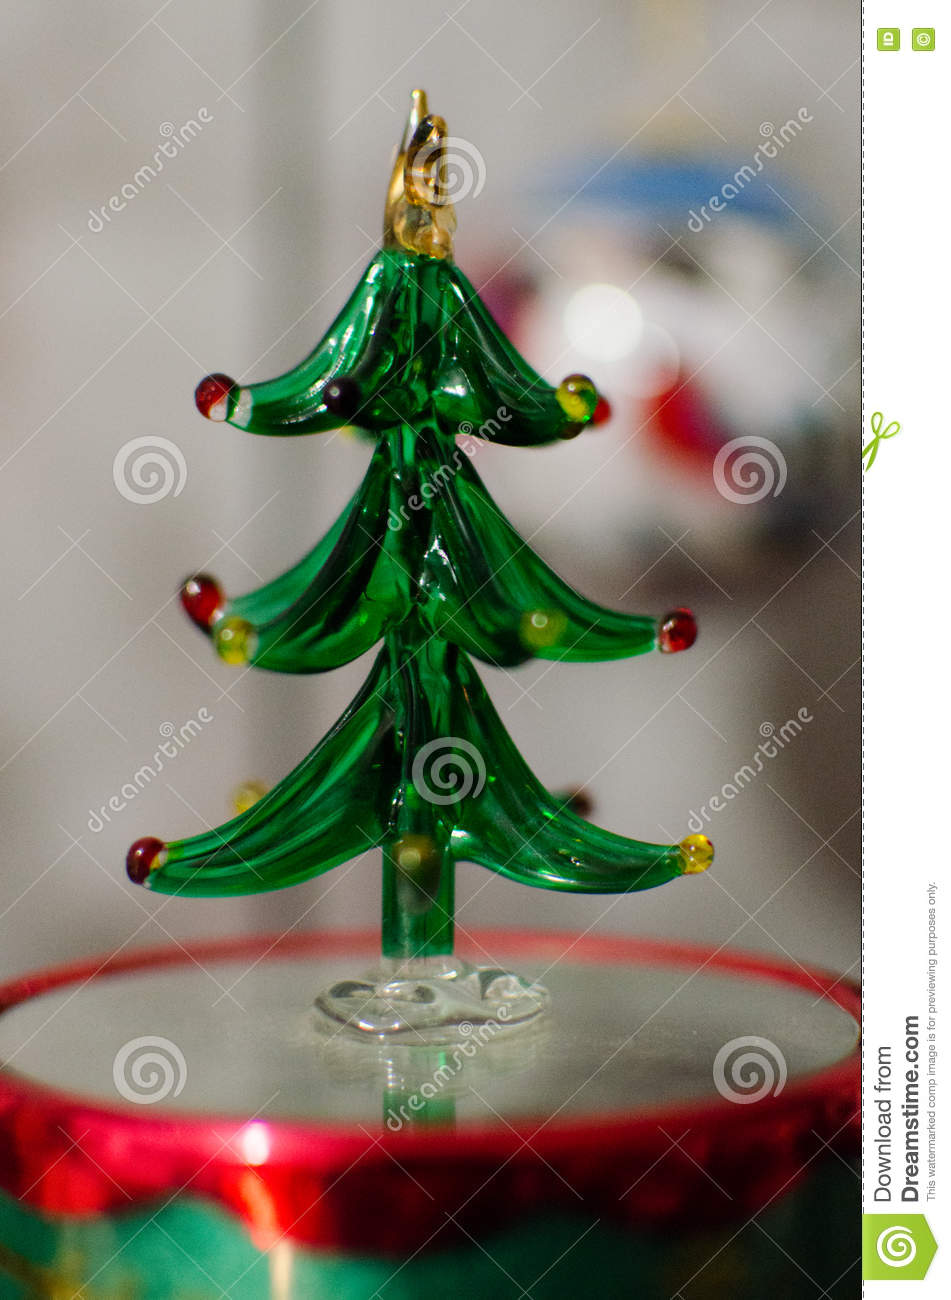 a glass christmas tree decoration